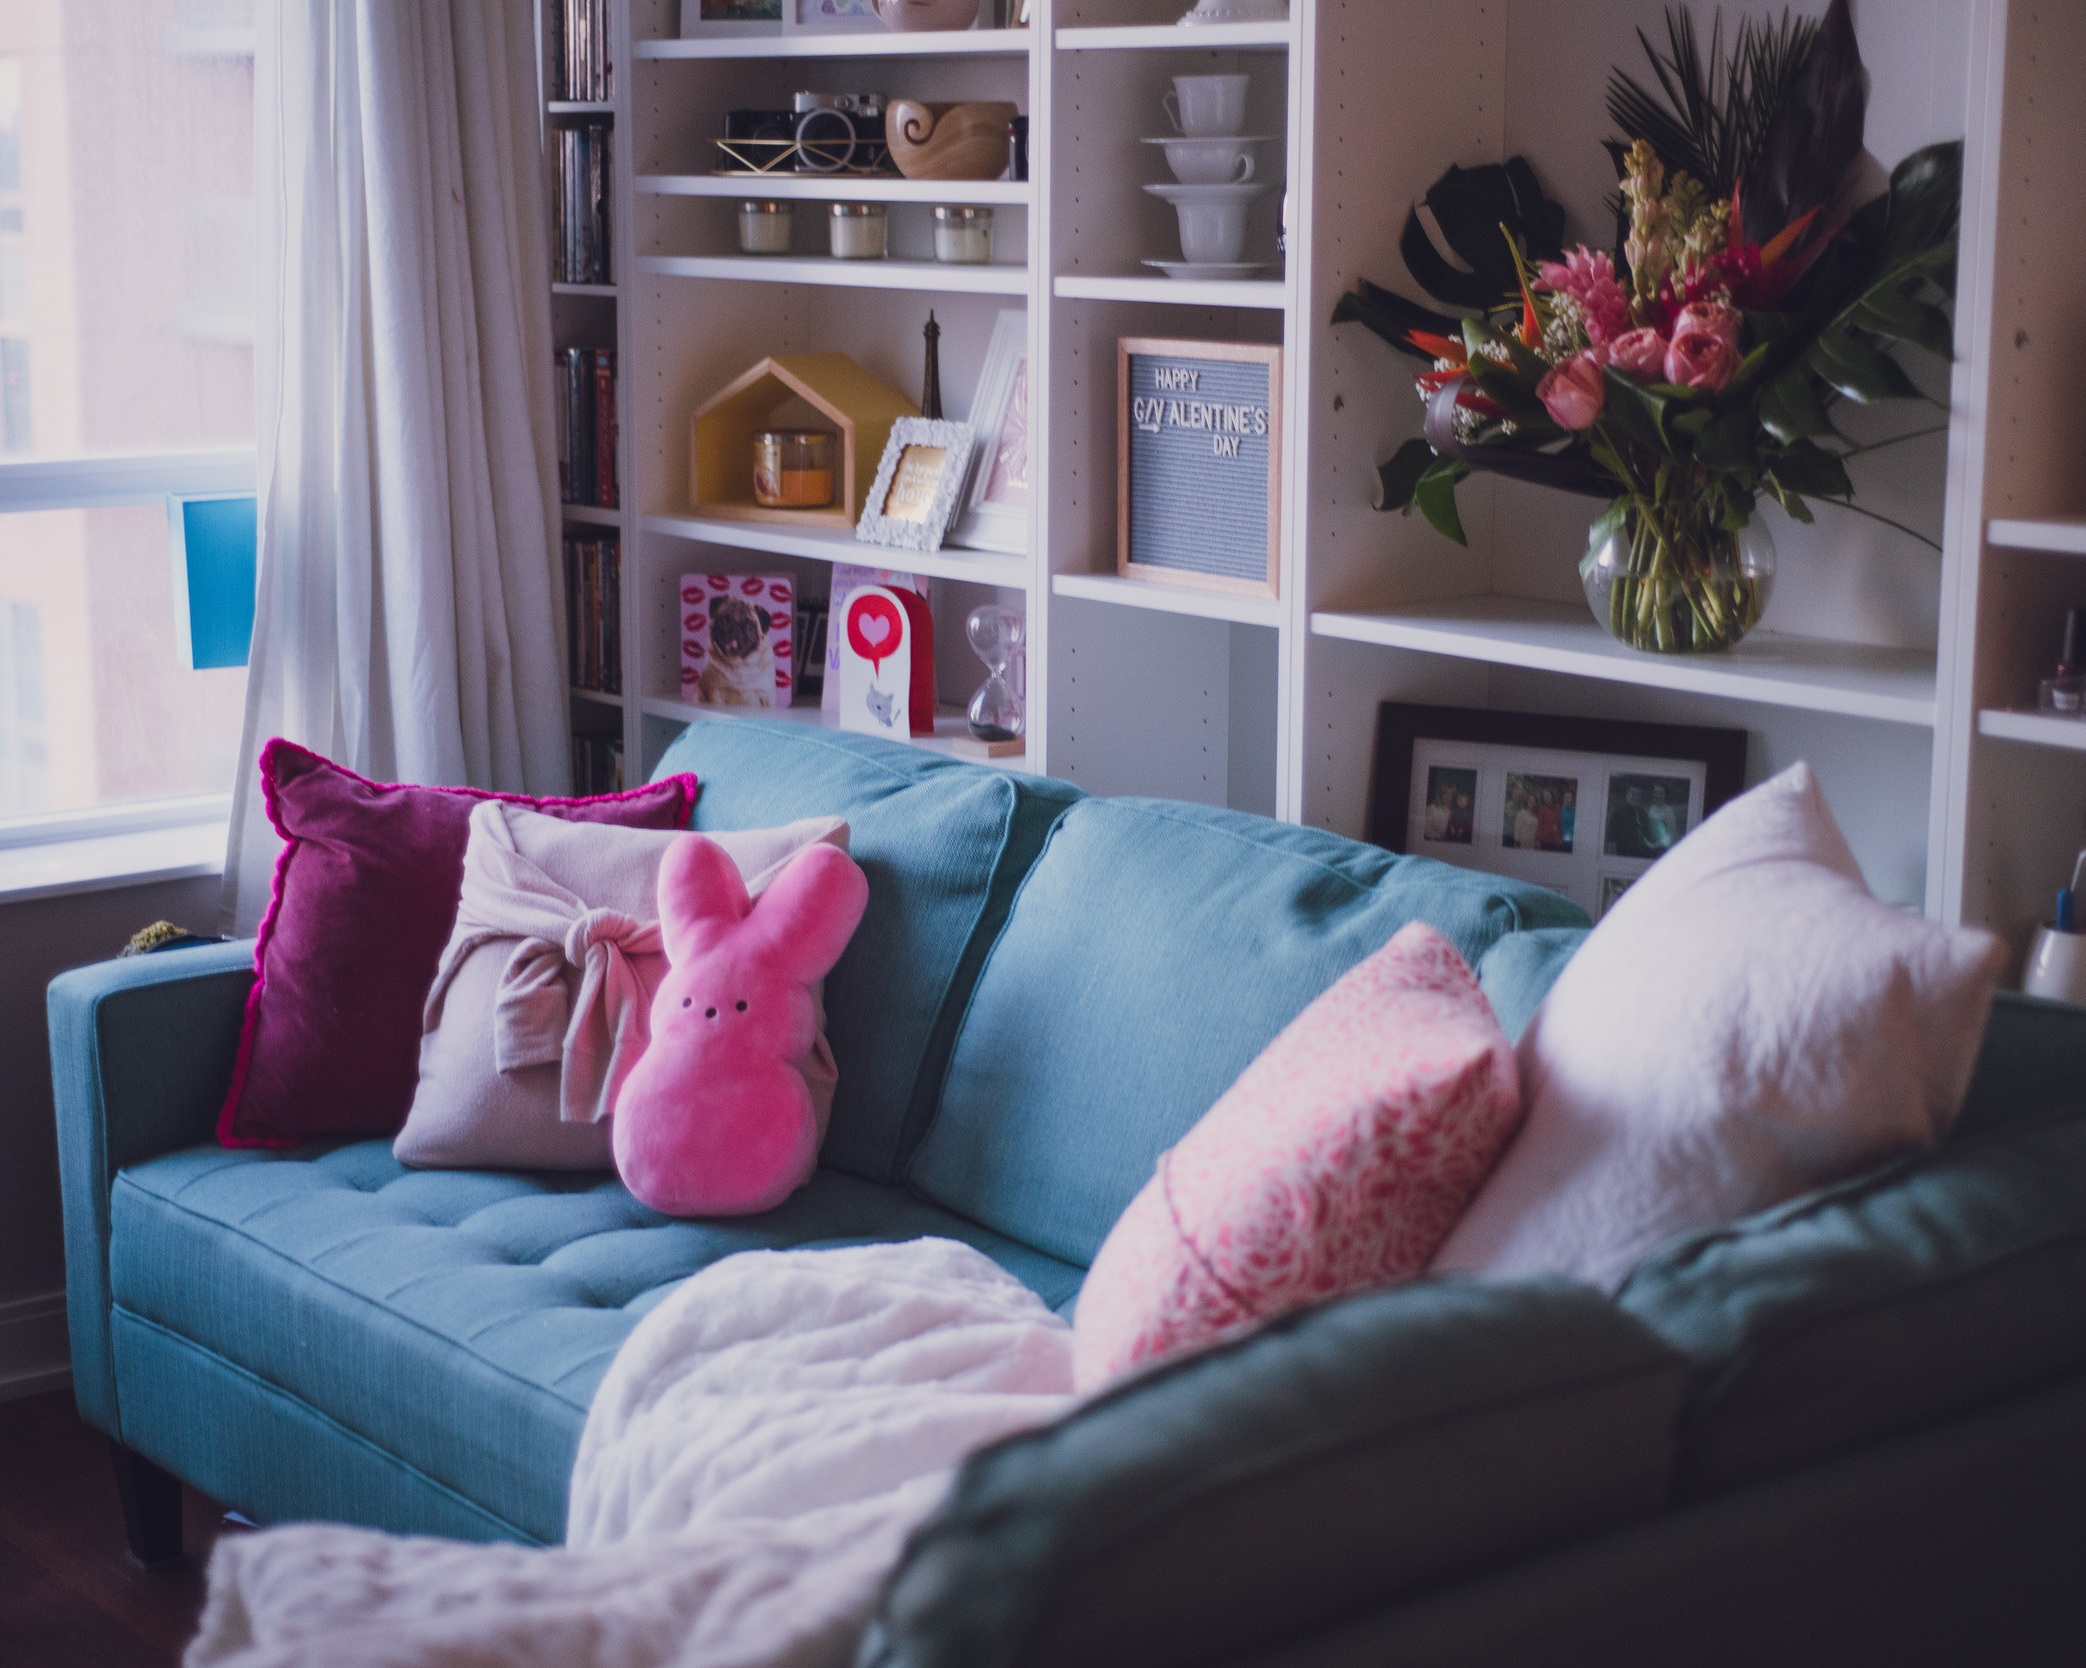 lily-muffins-valentine-living-room-ideas